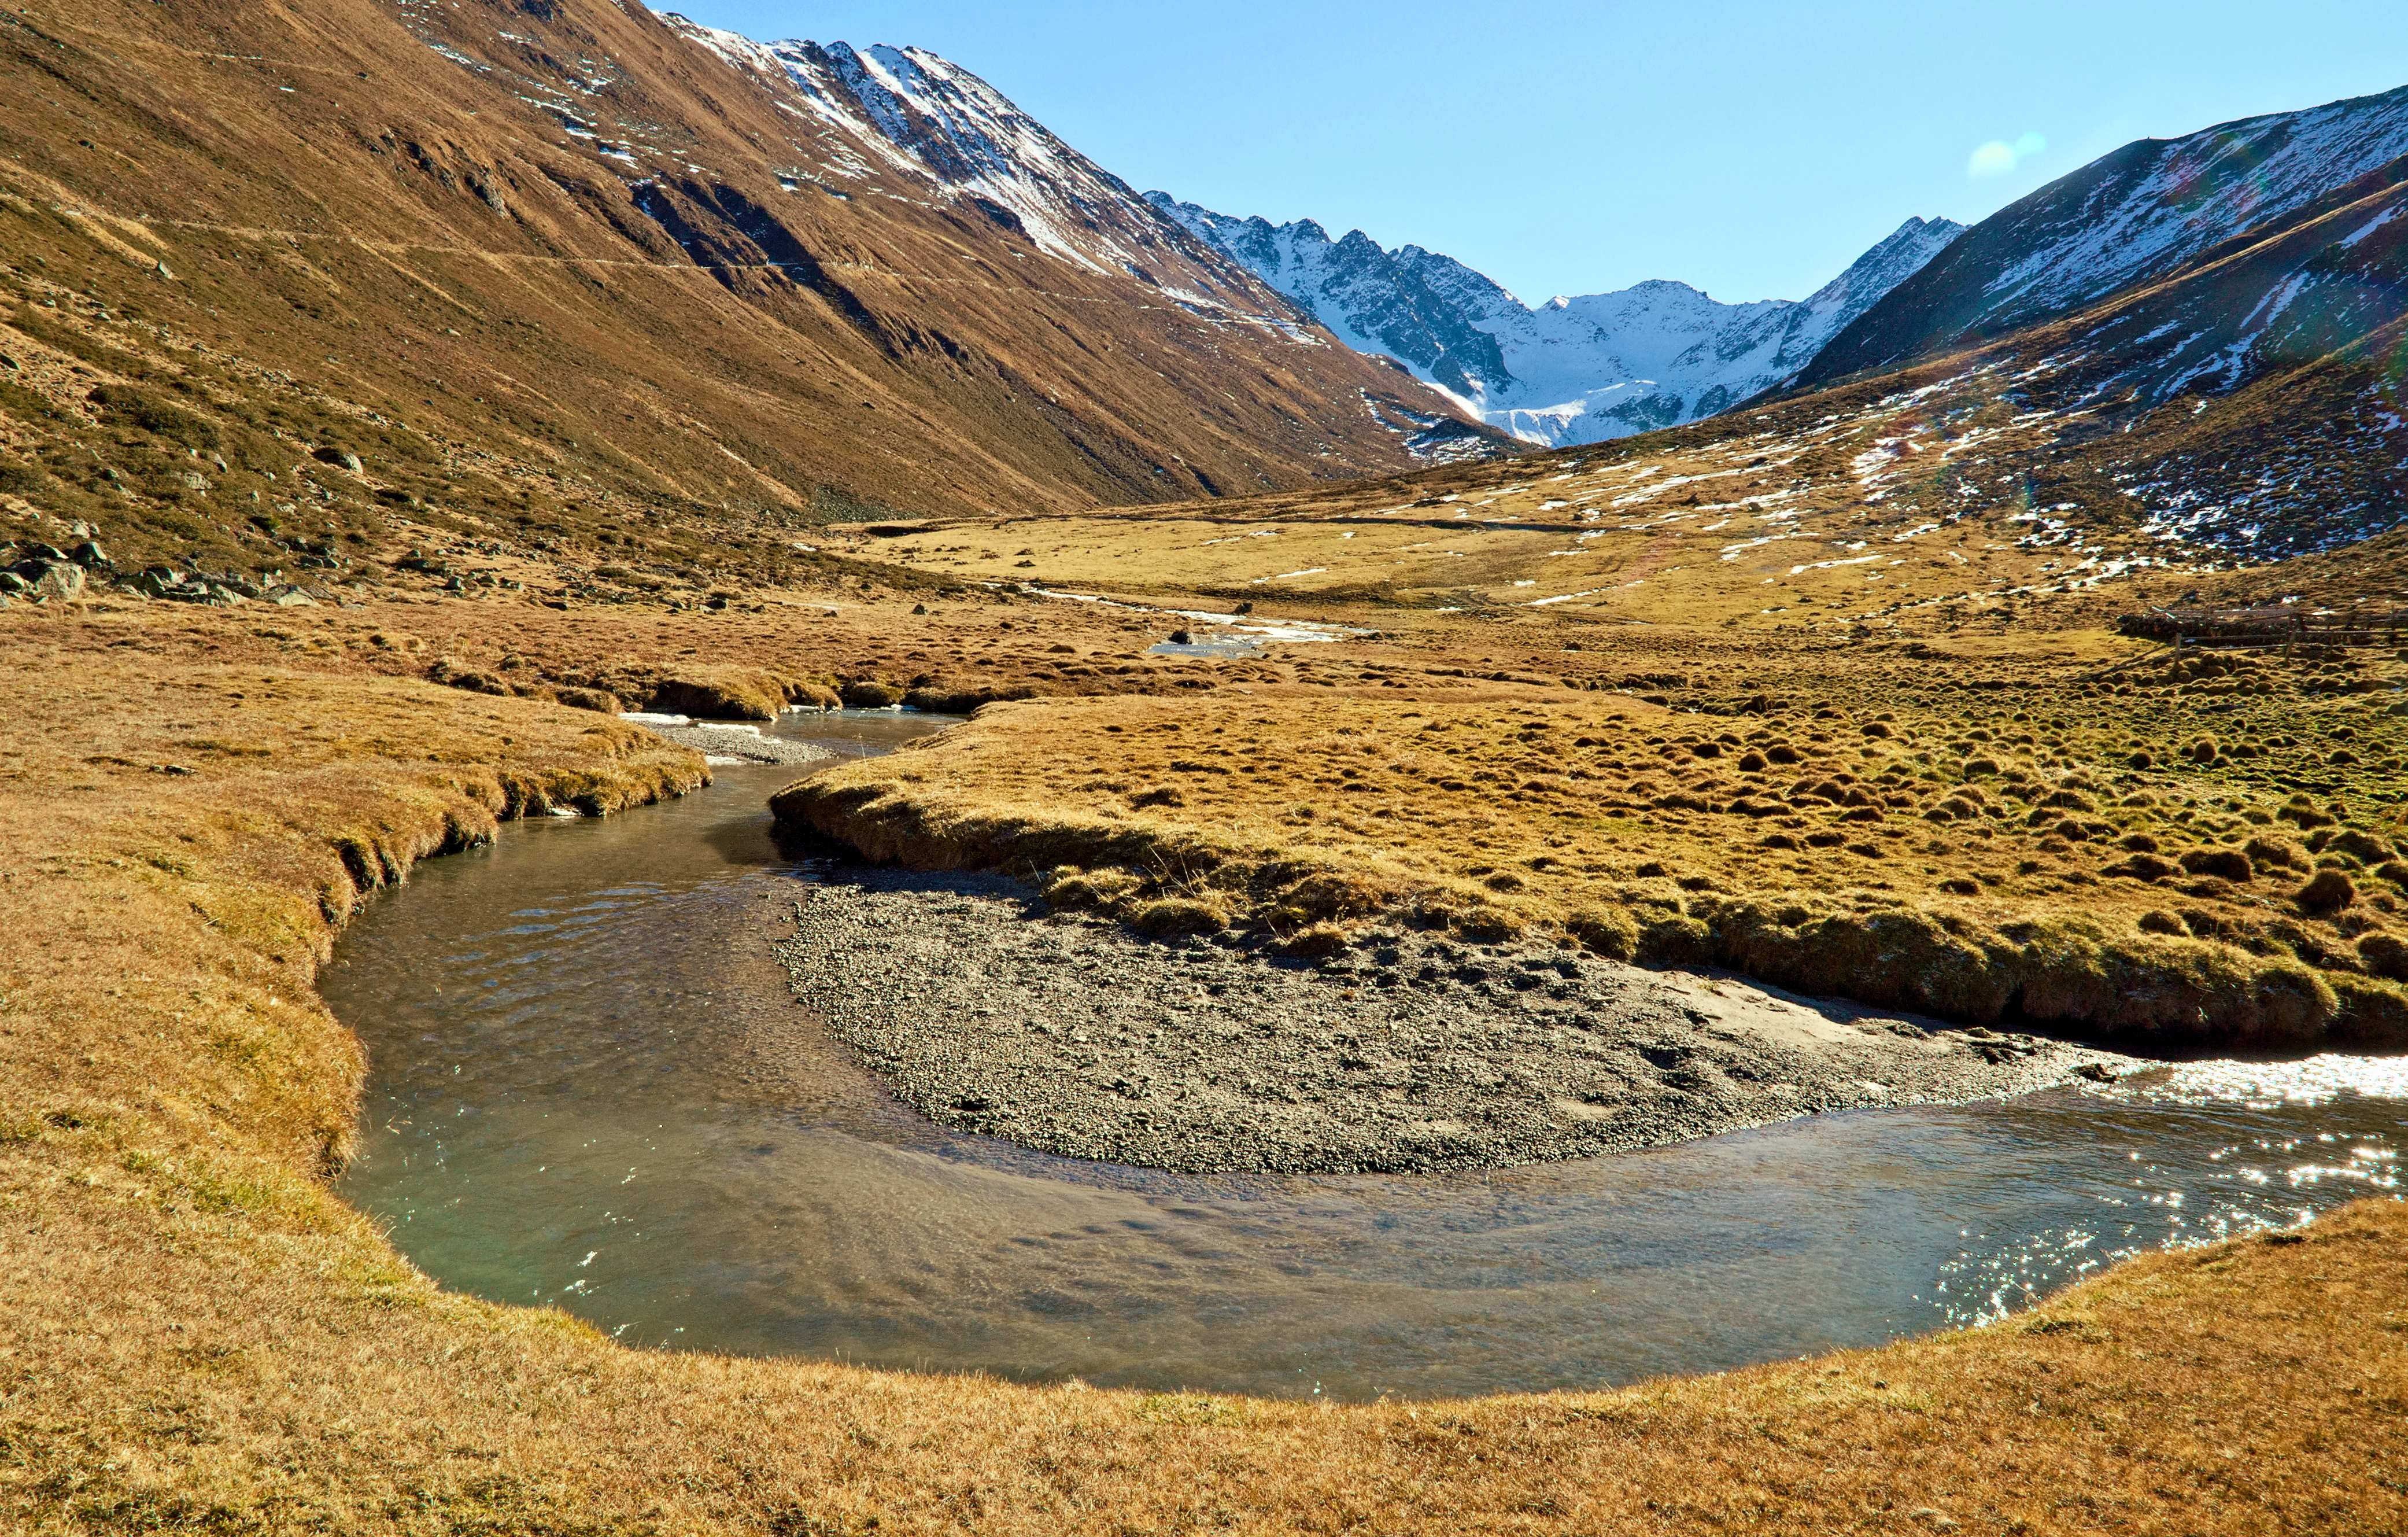 Various valleys penetrating the high mountain range, such as the Kaunertal and the Platzertal, would be affected by the project.